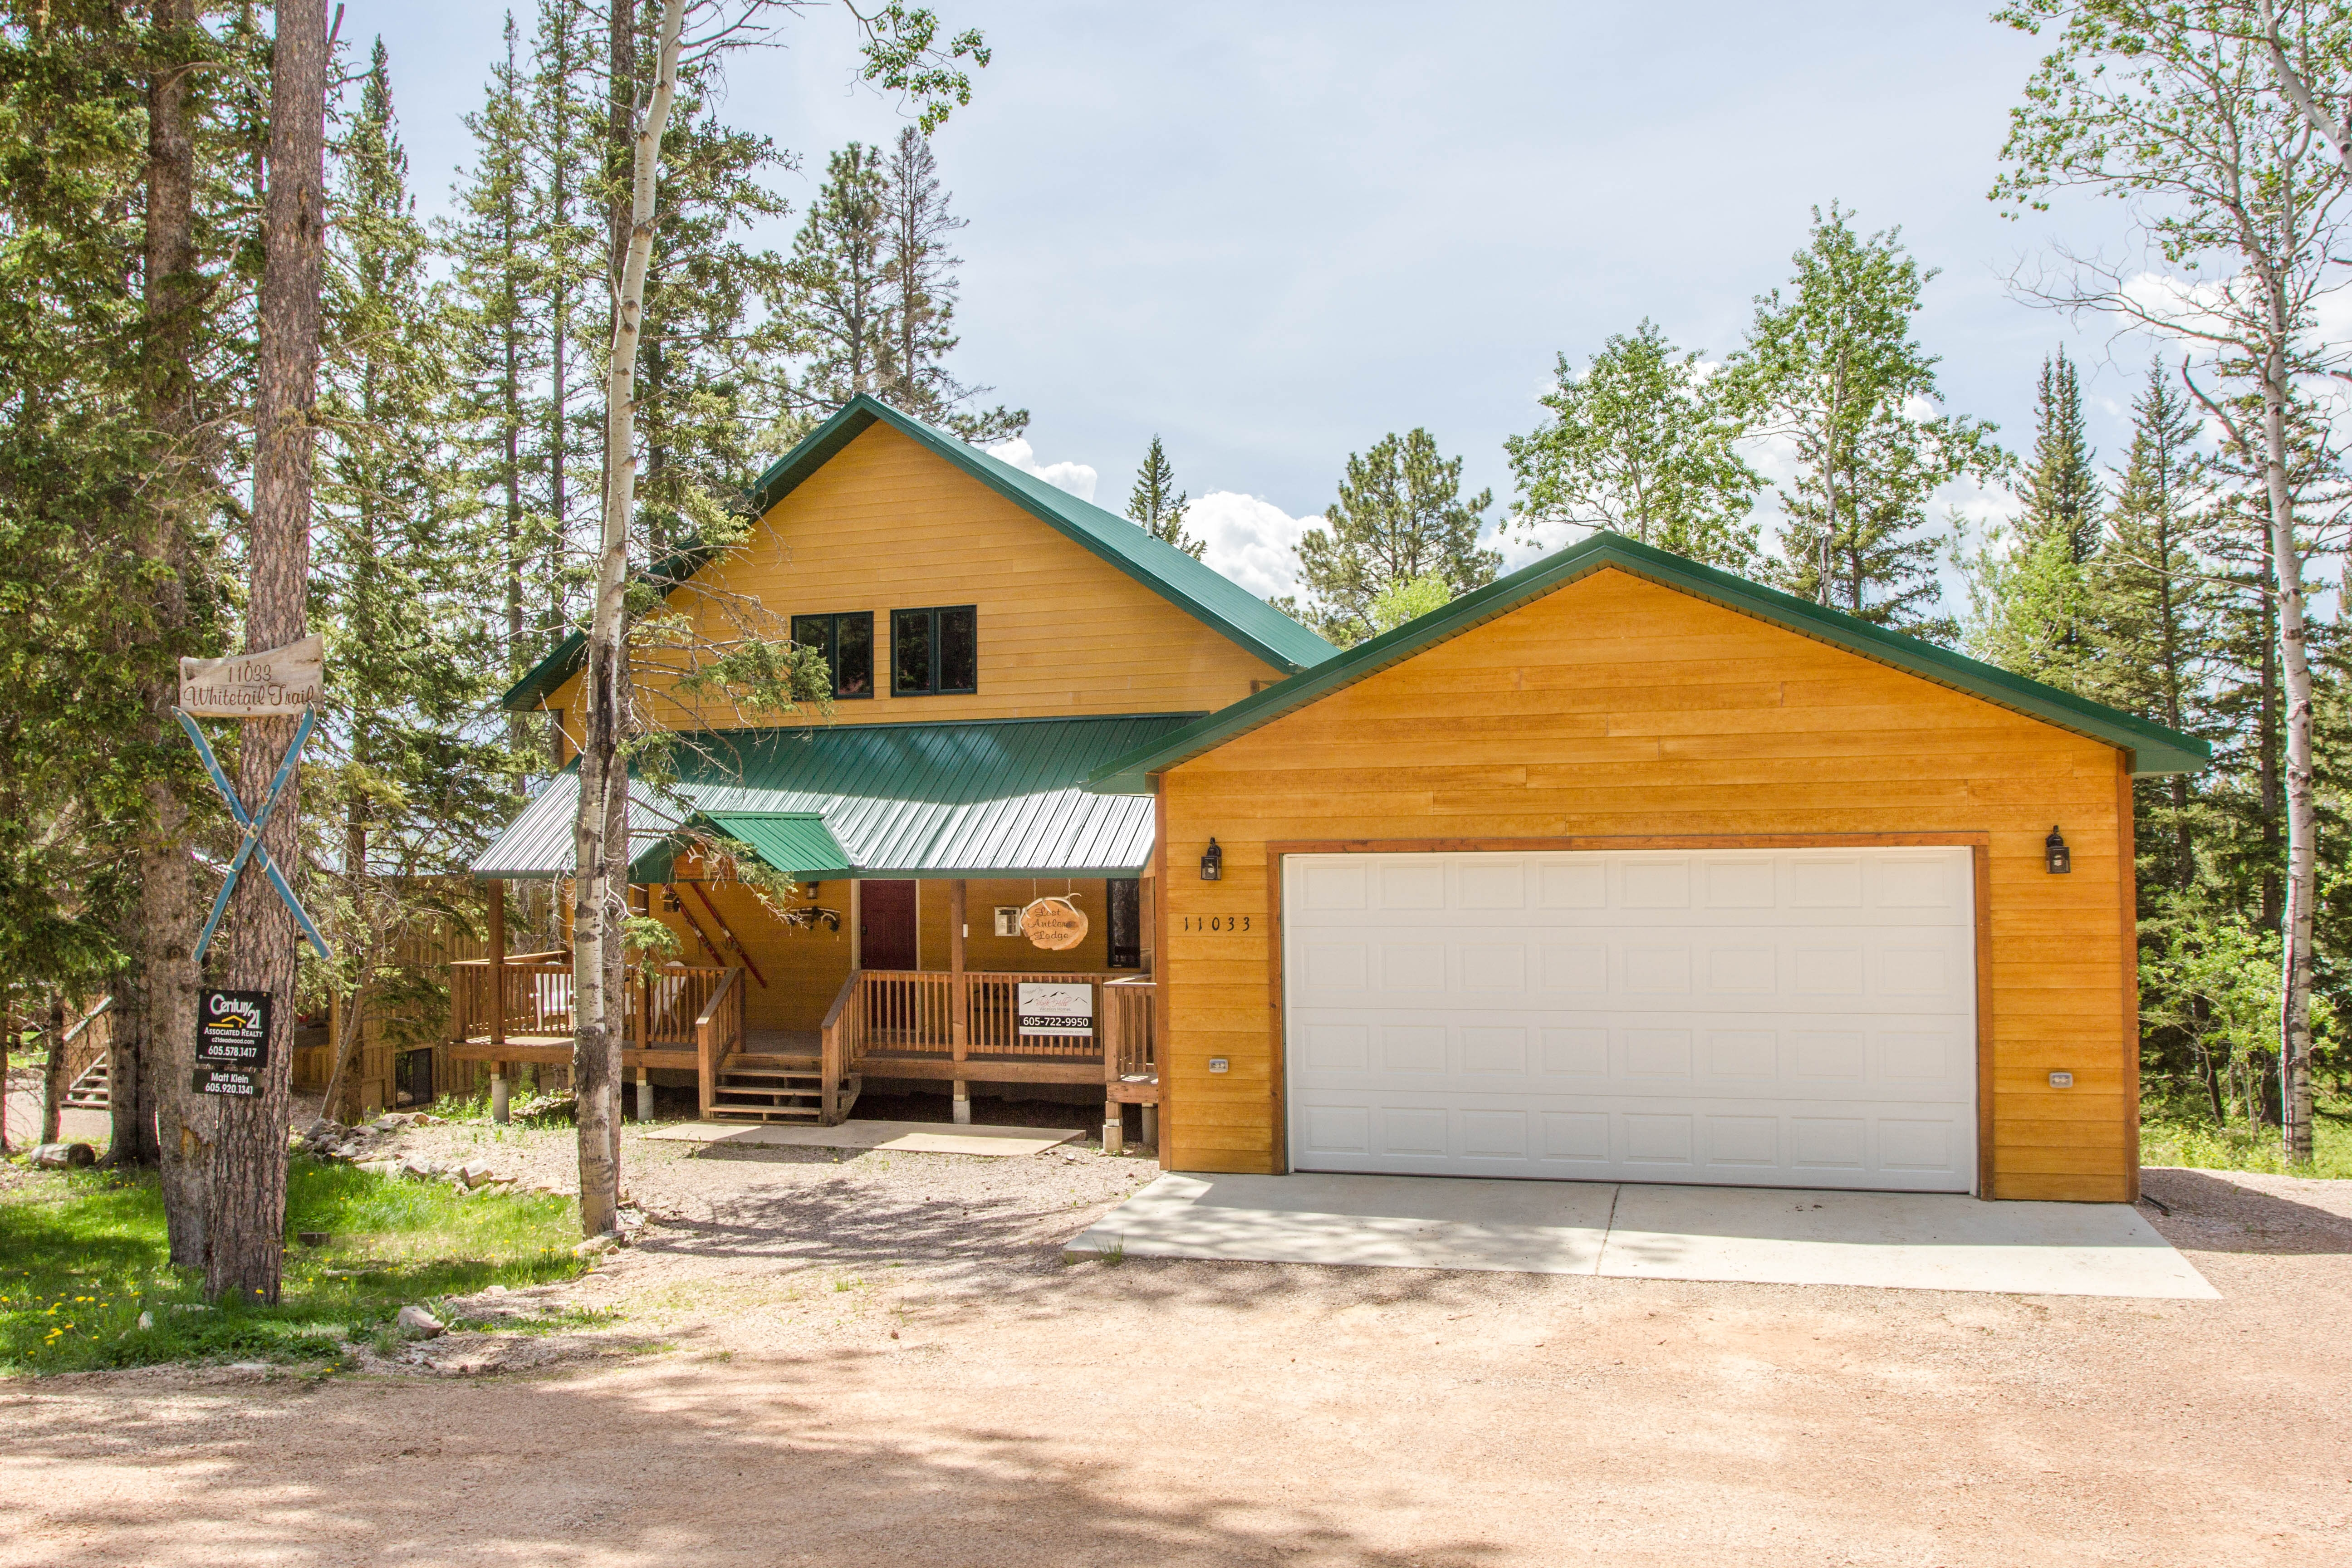 Terry Peak Vacation Home